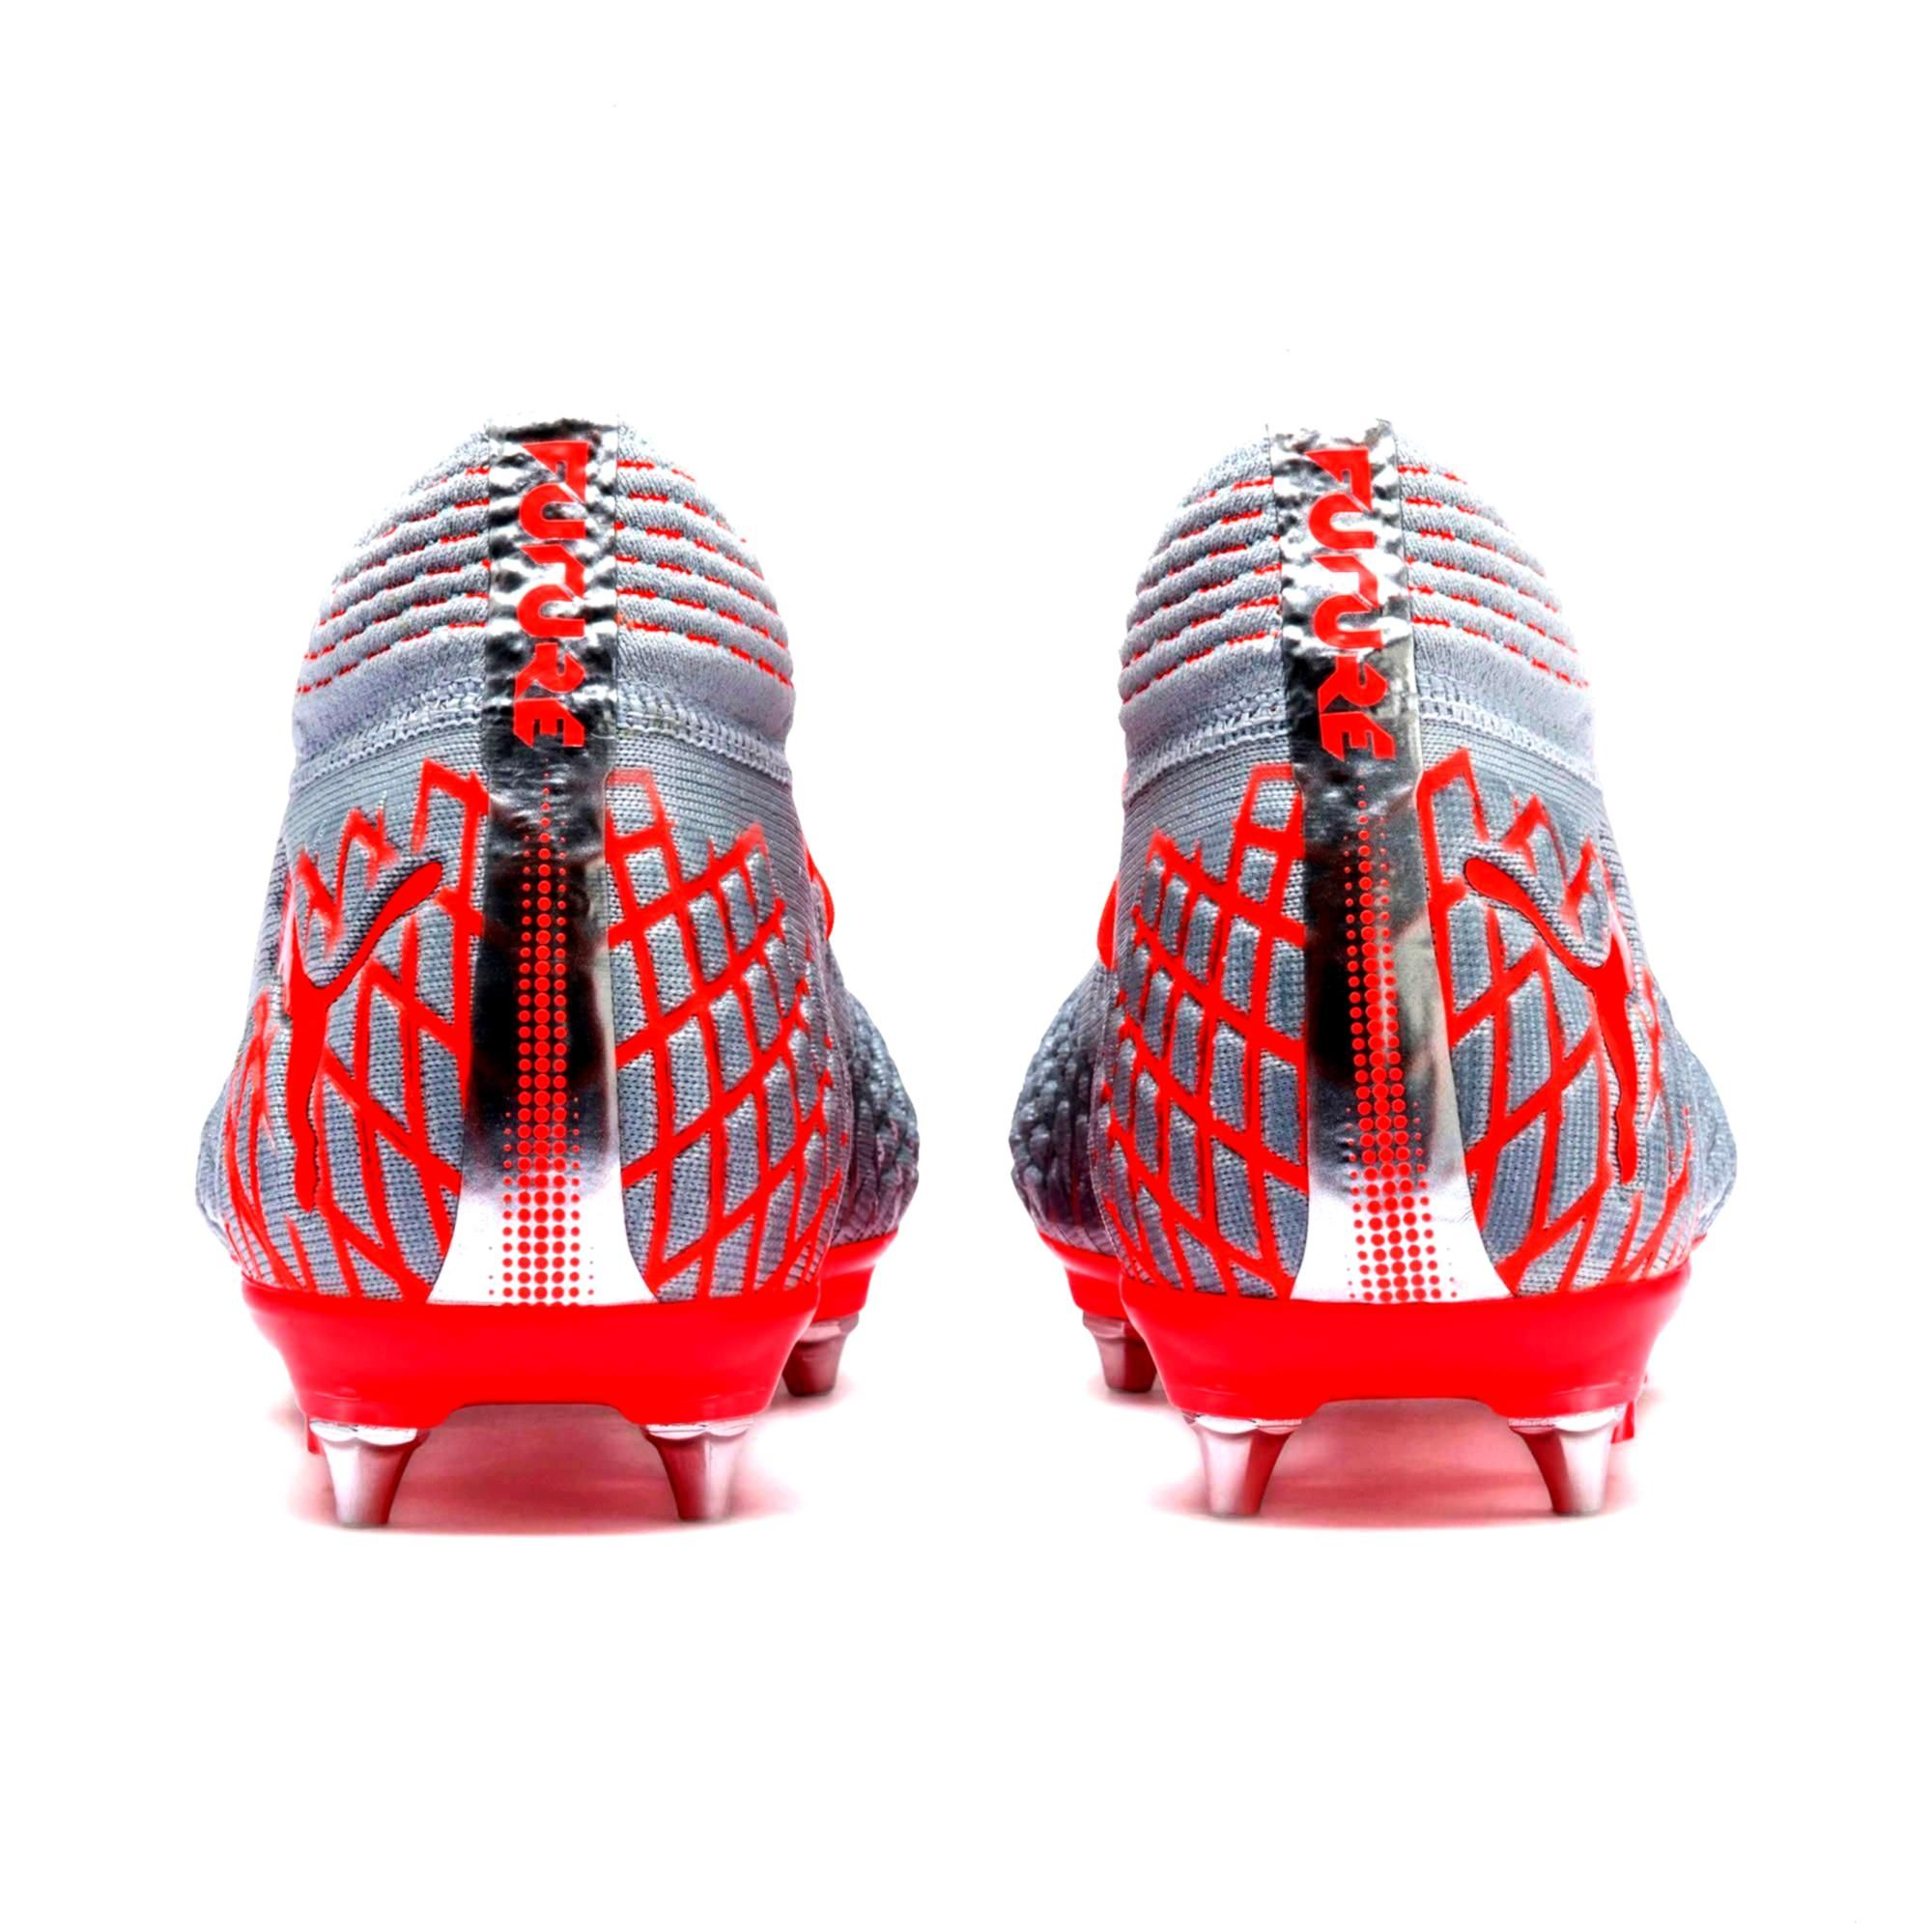 Blueredhigh Collection Football Bluenrgy Redhigh Kingdom United Future Netfit Anthem Boots Pack Puma Risk Mx In 2020 Red High Football Boots Sport Shoes